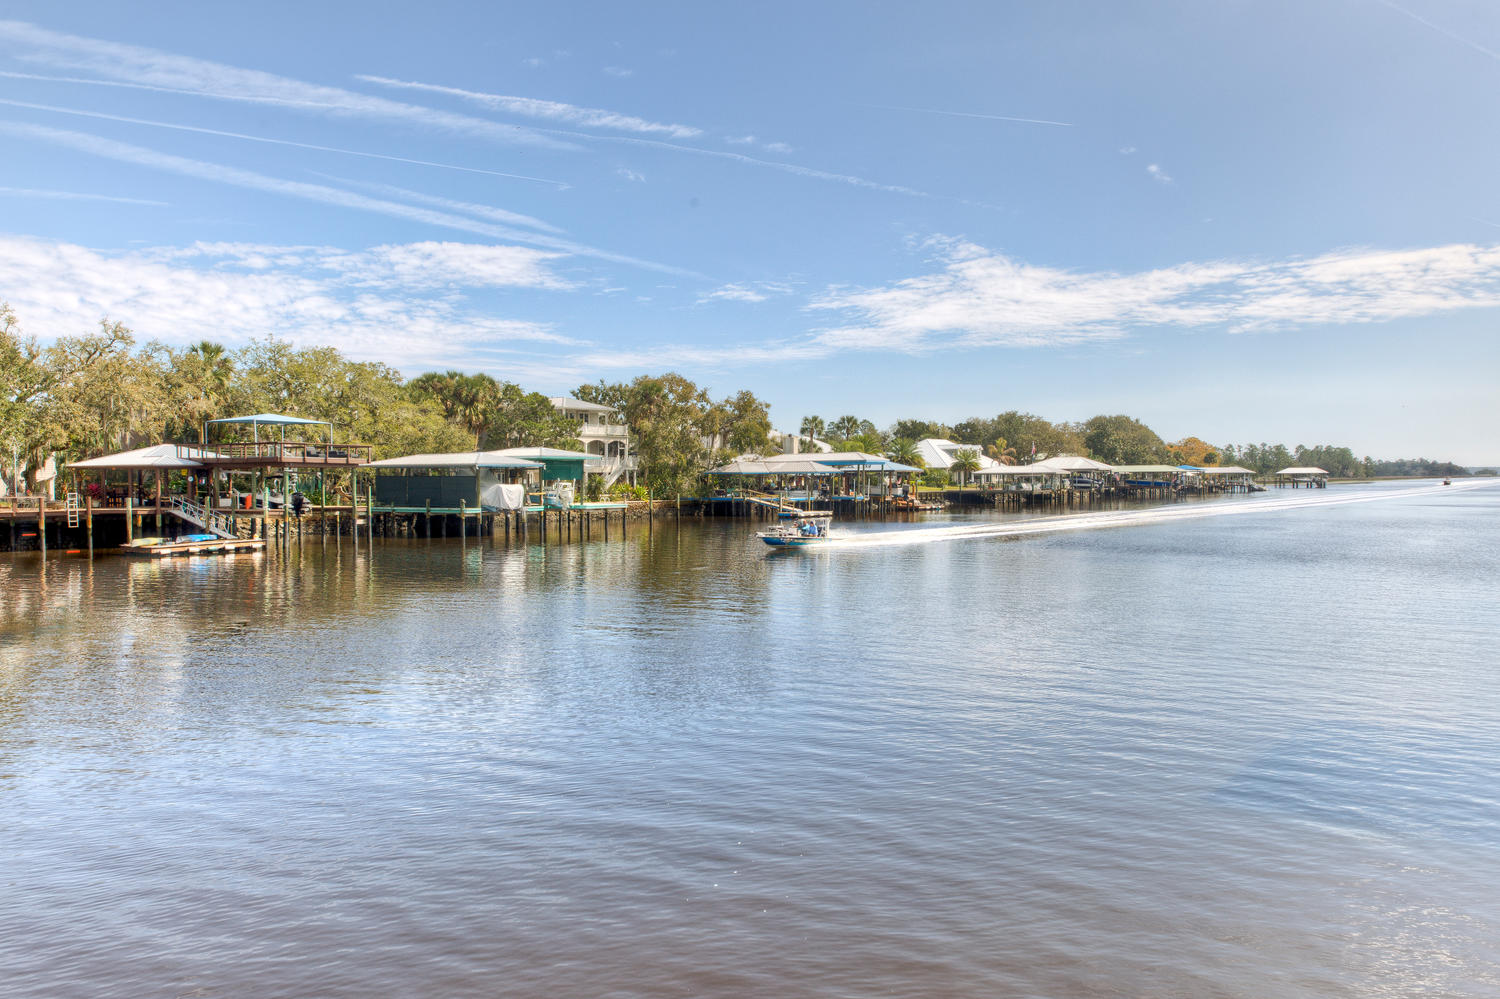 Watch boats and wildlife from dock